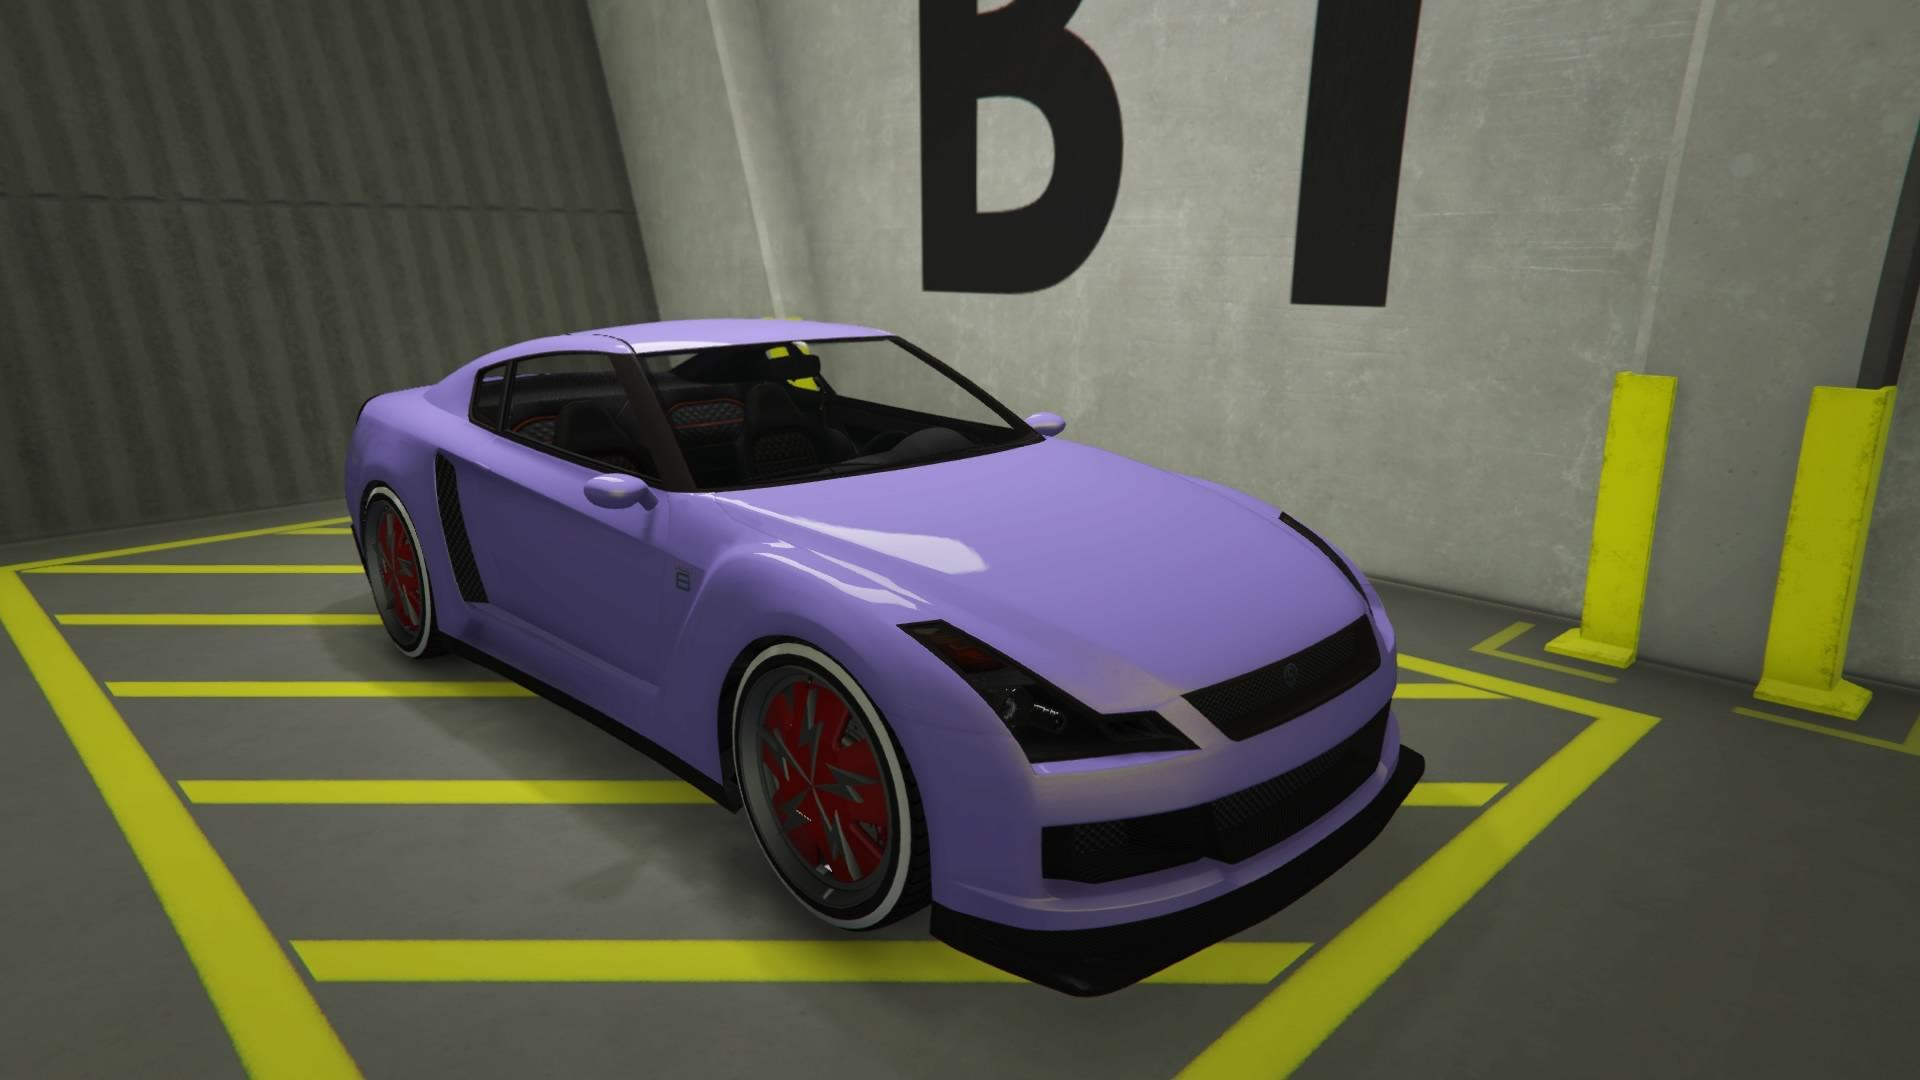 Elegy RH8 - Light pink paint and red rim color.